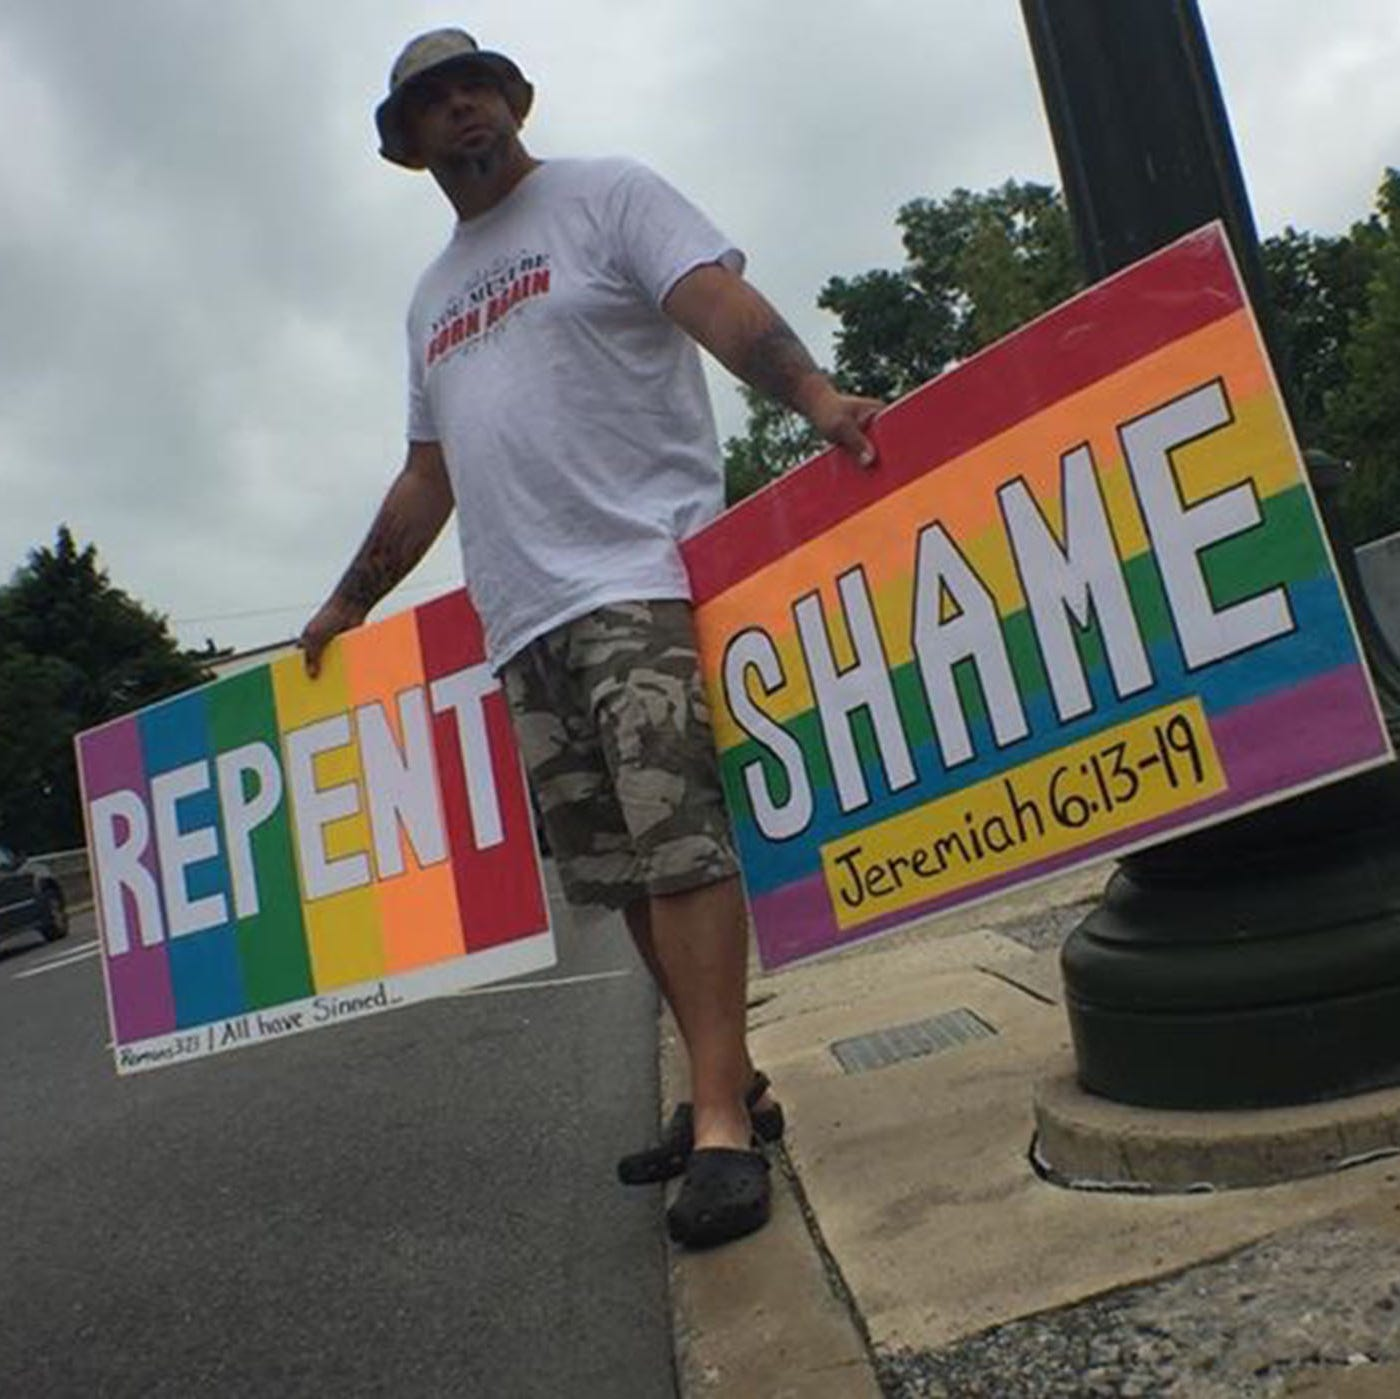 Anti-LGBTQ group protests in Chambersburg Square ahead of Pride event this weekend